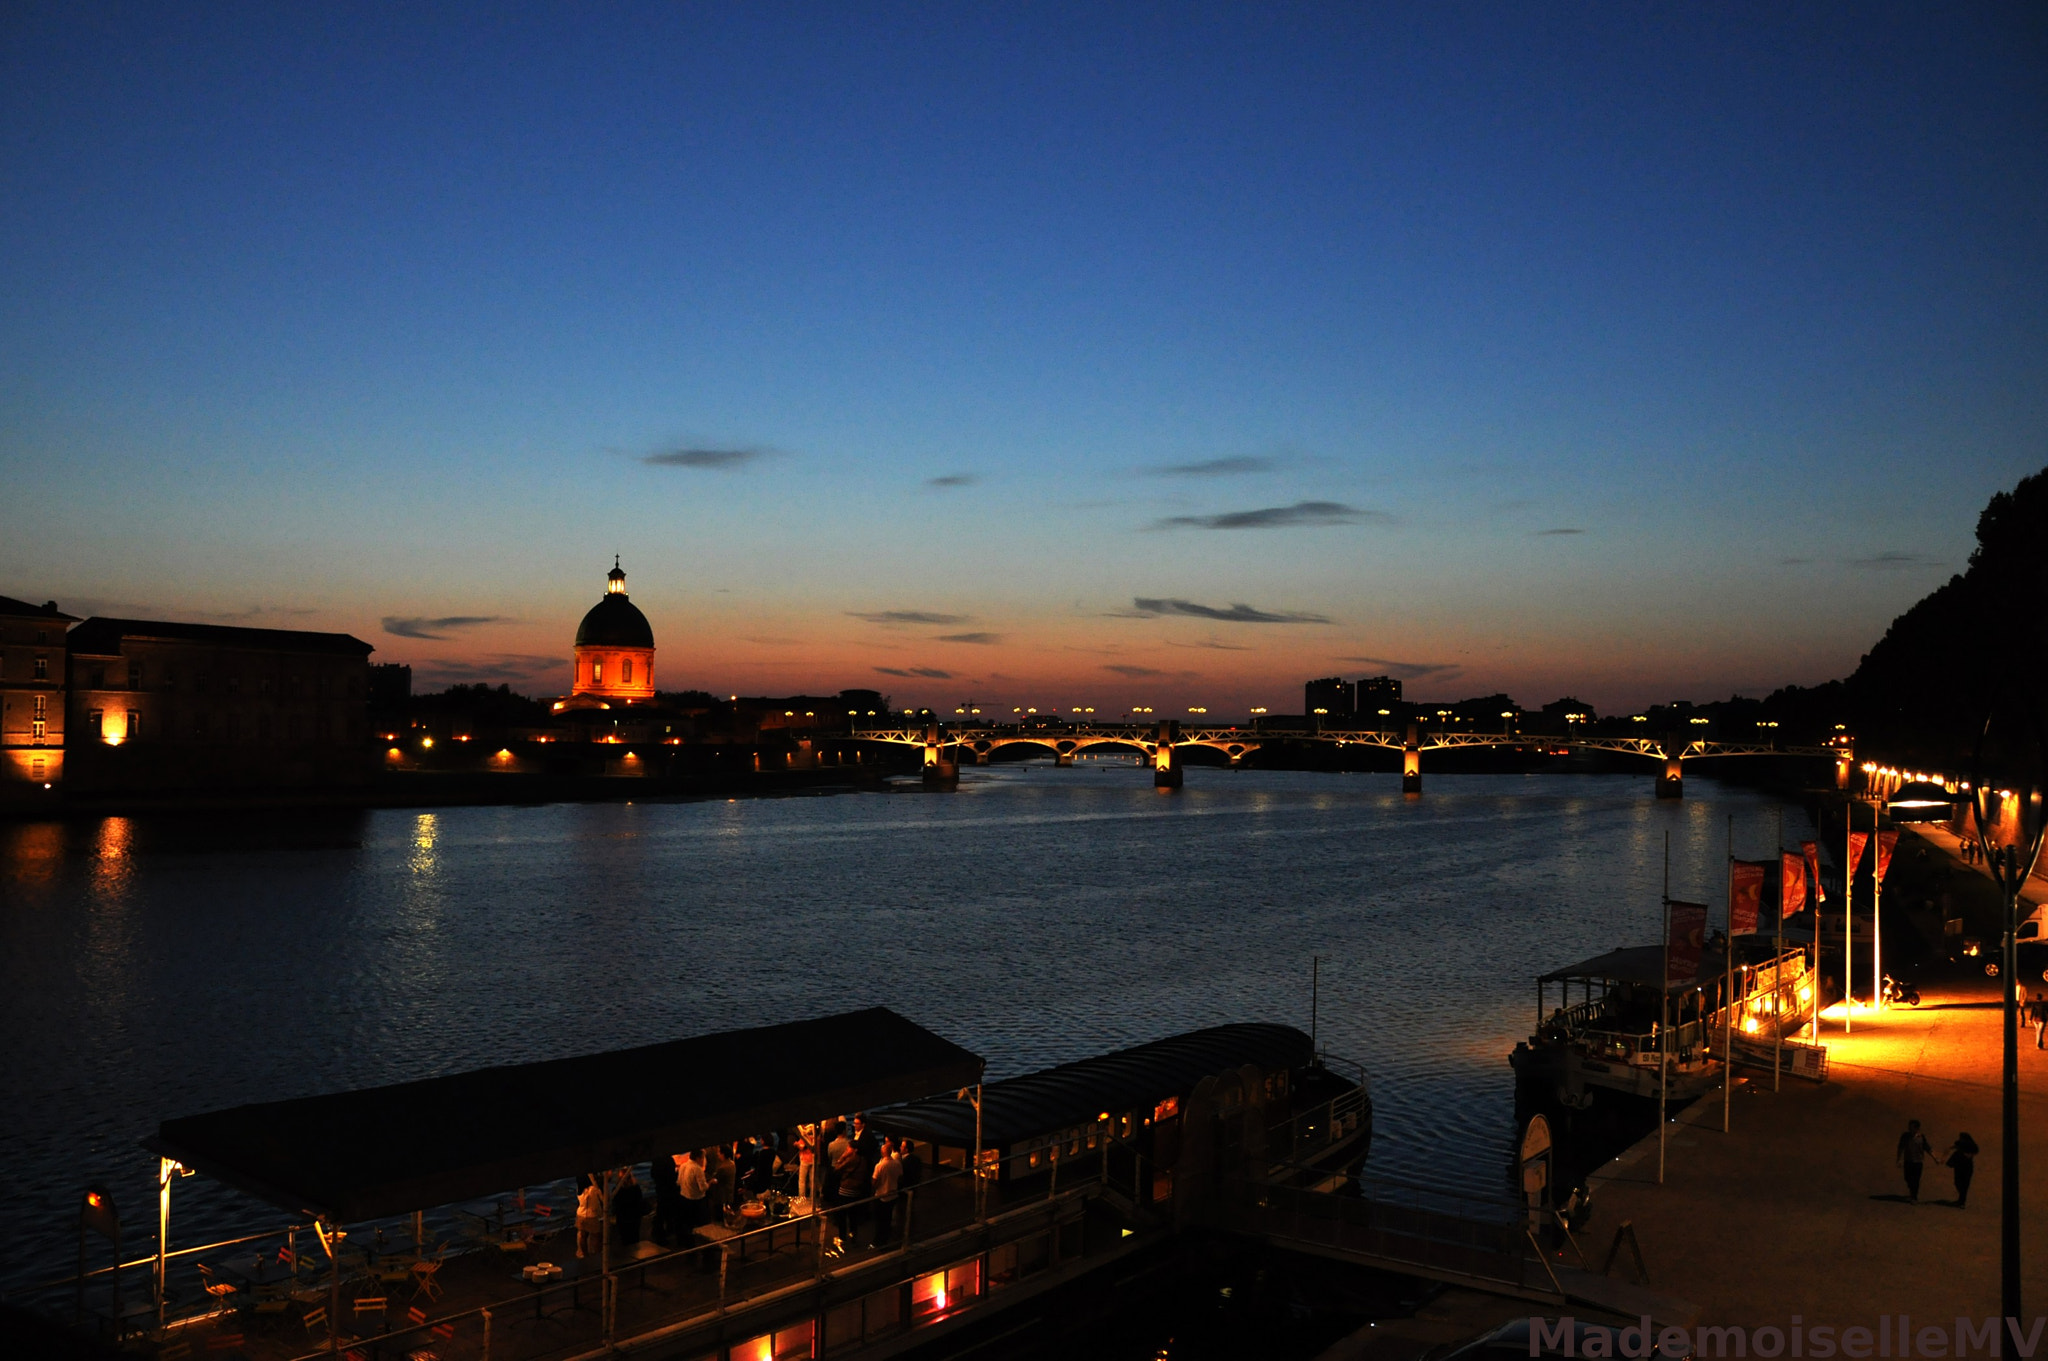 Photograph Evening by the Garonne by Mademoiselle MV on 500px